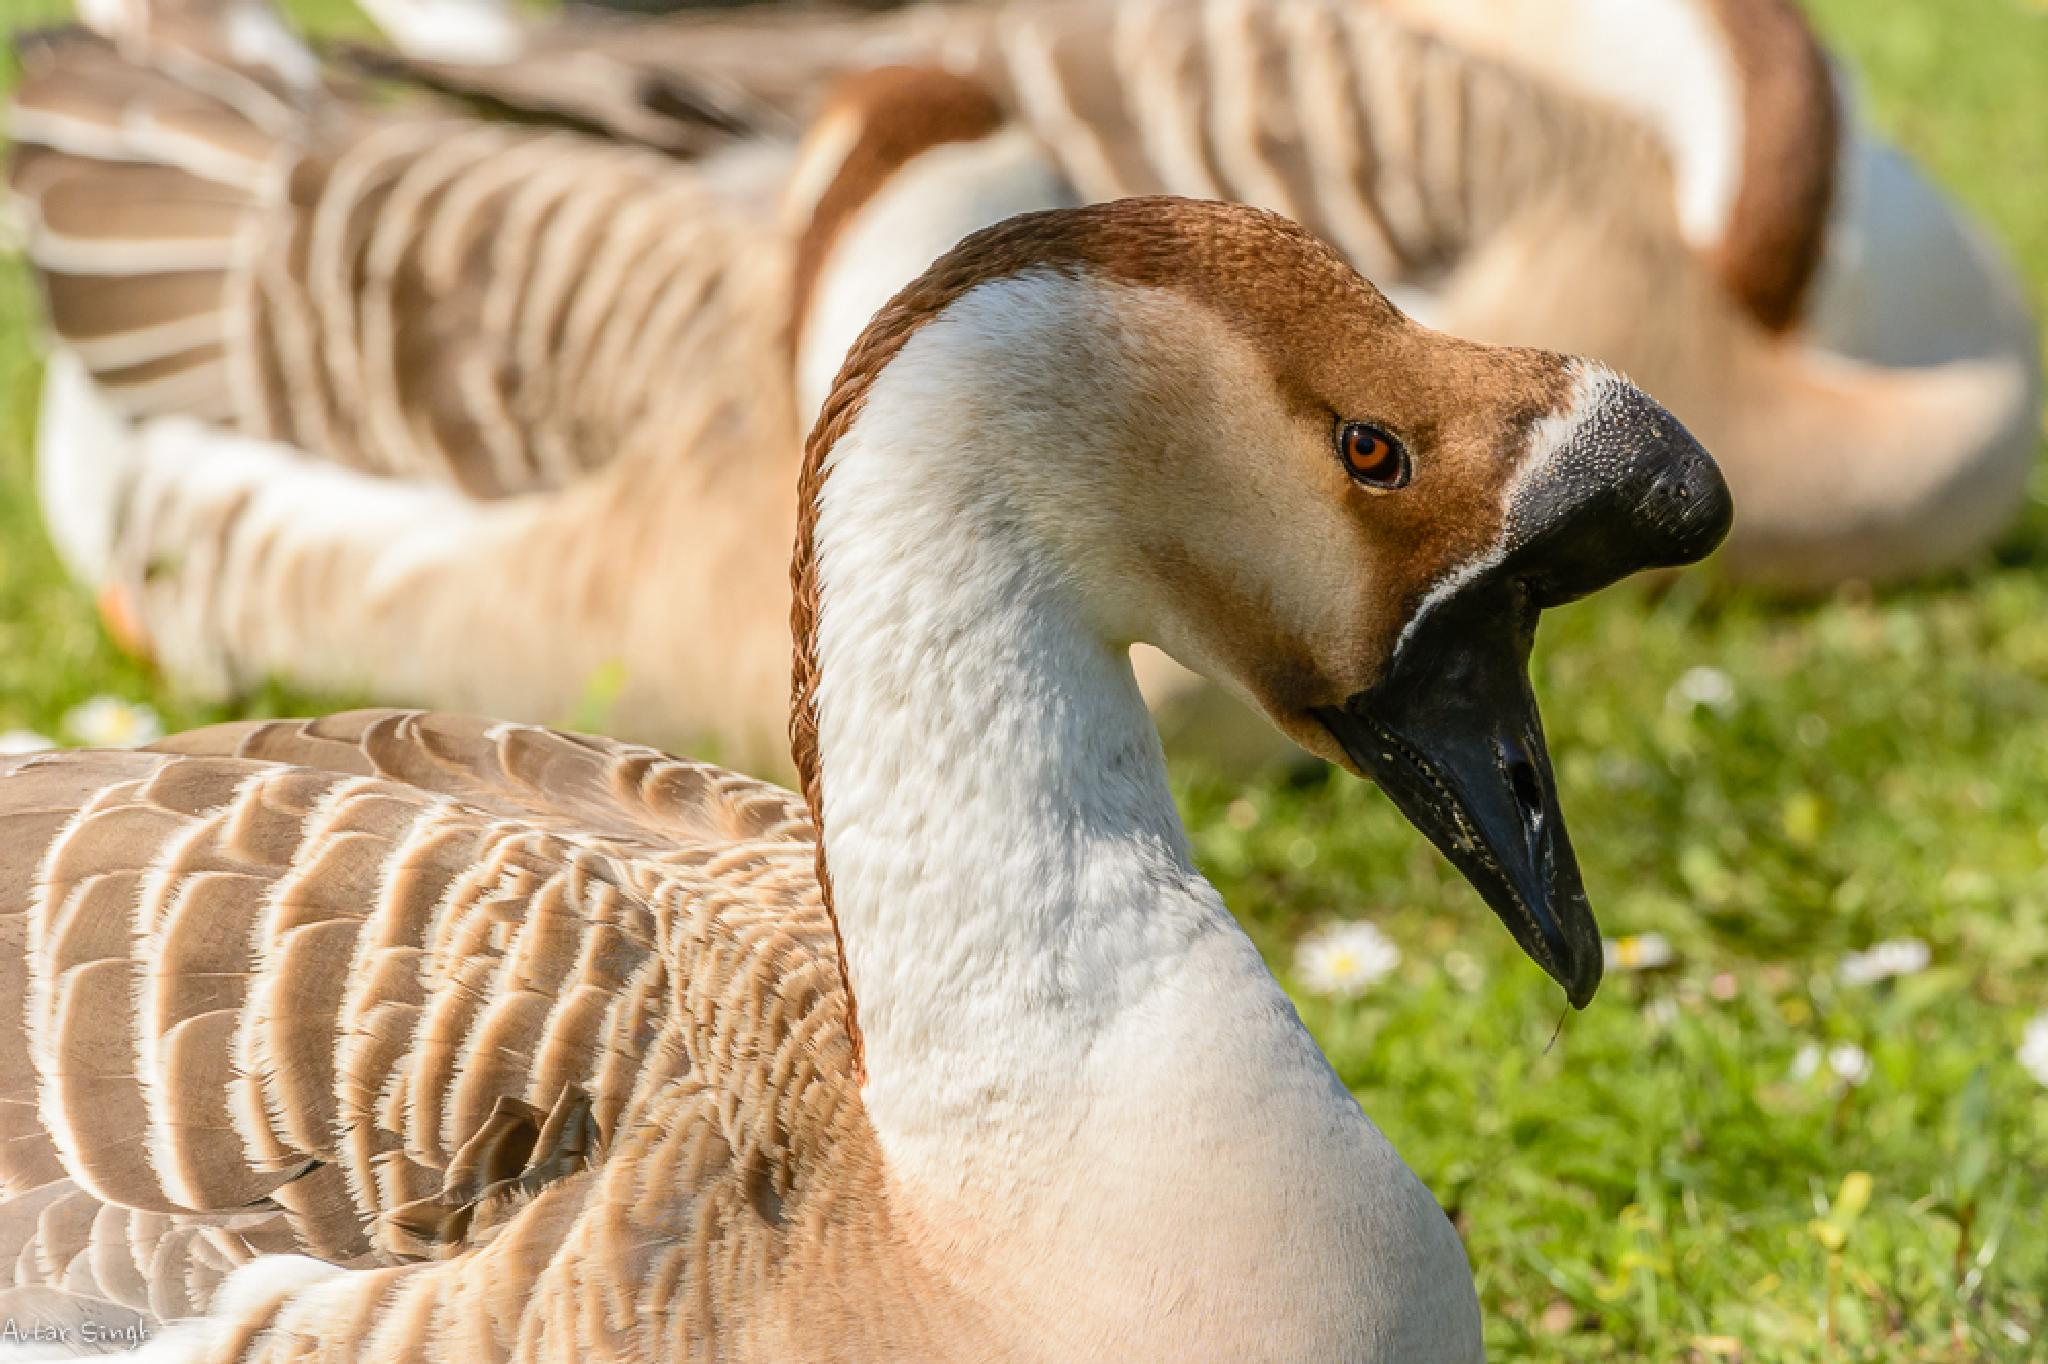 Chinese/ domestic goose by Avtar Singh